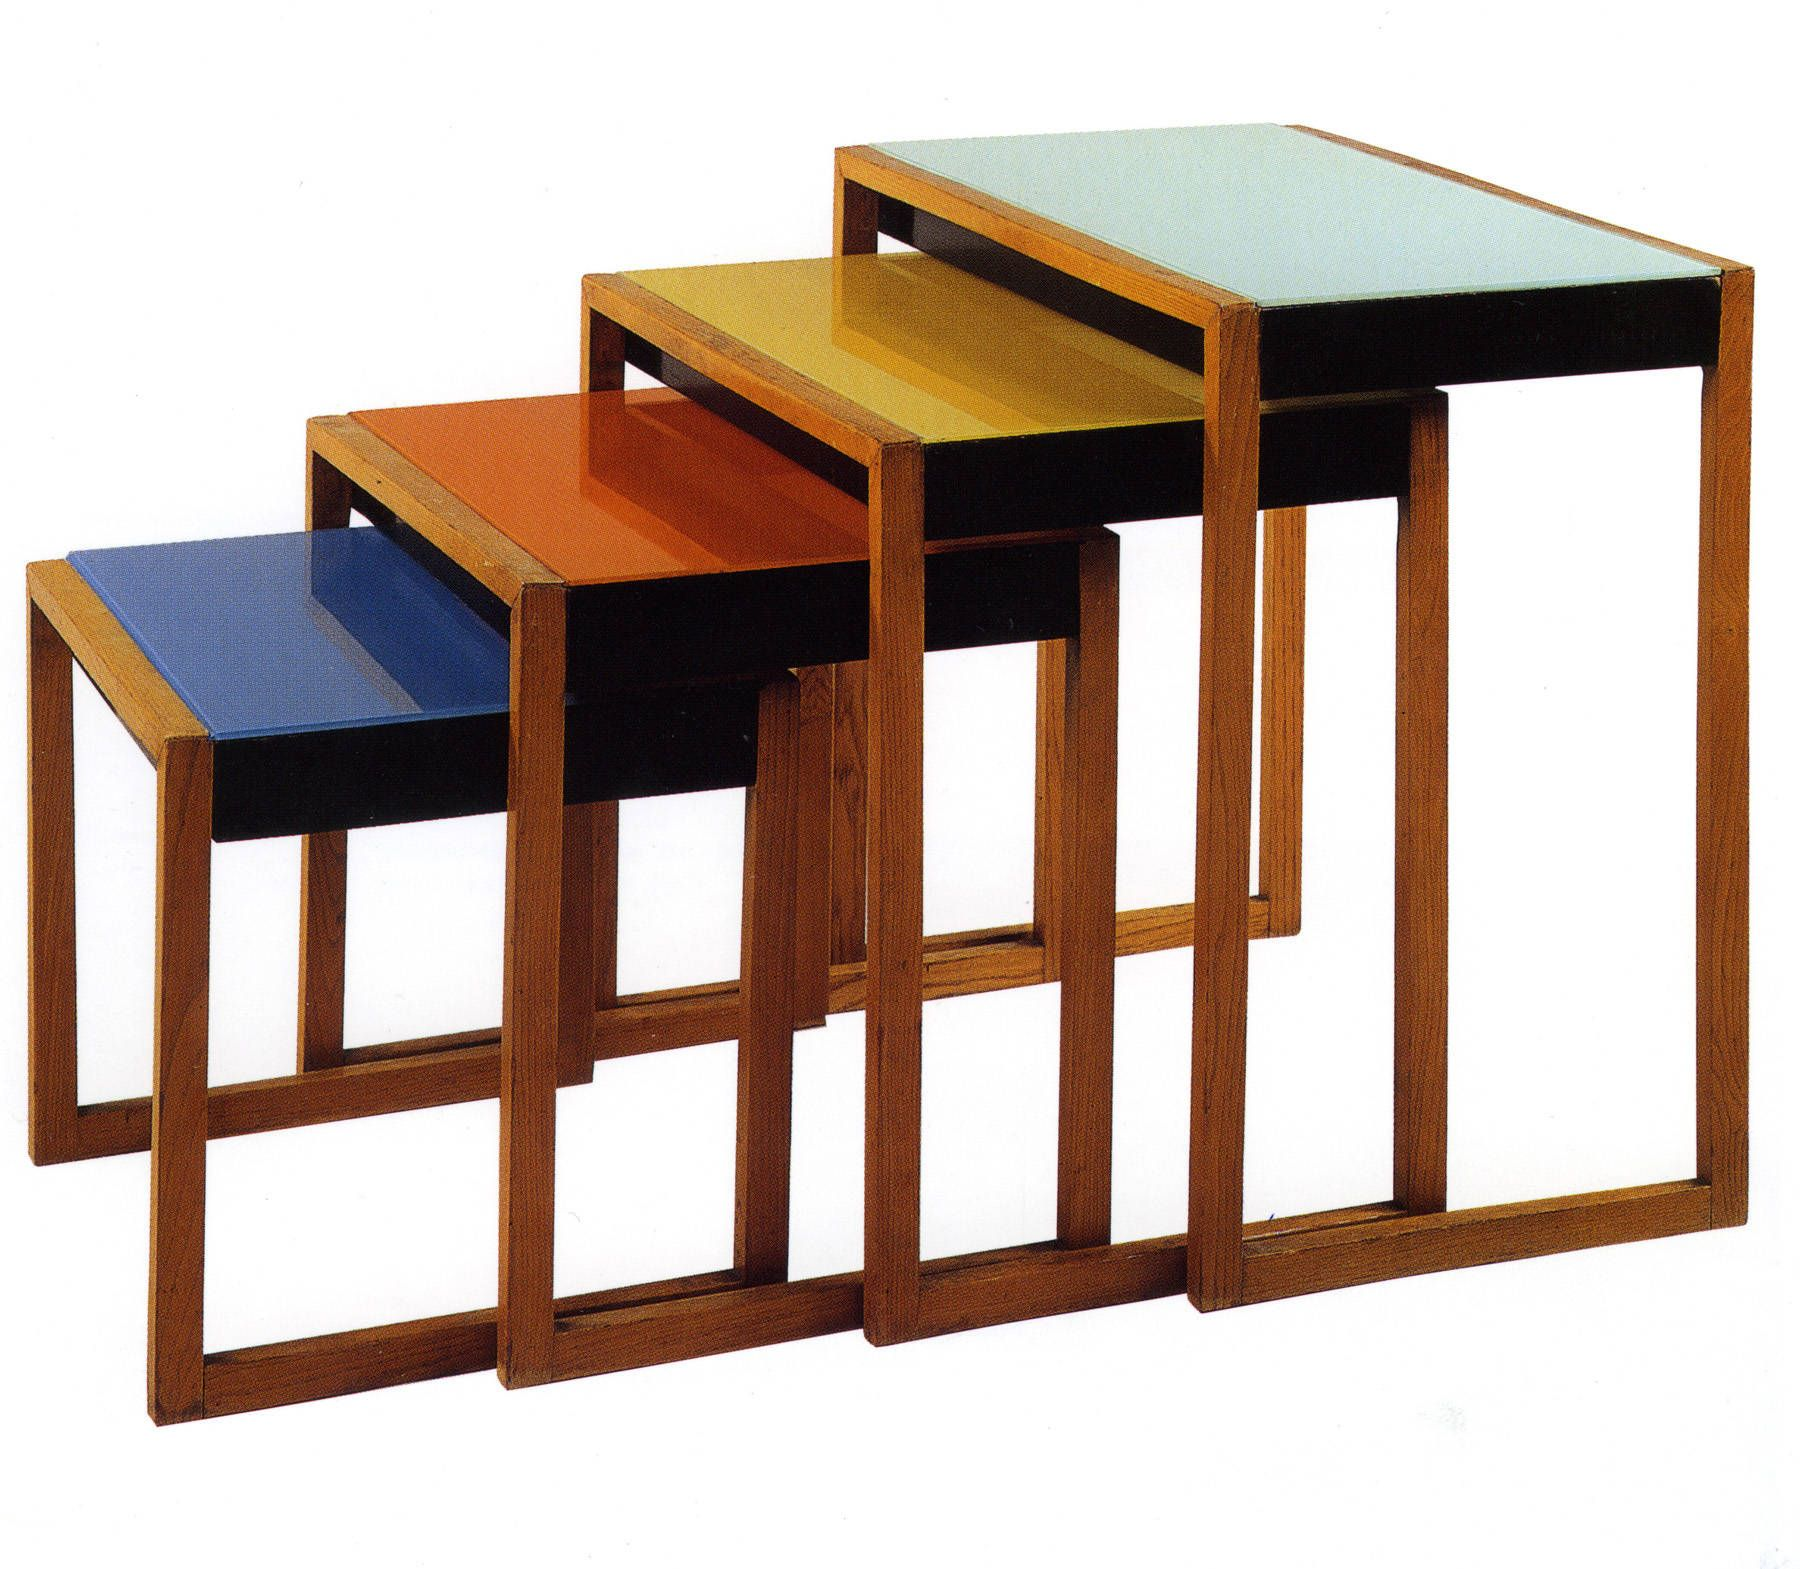 josef albers  set of stacking tables  ca  1927  ash veneer  black lacquer  and painted glass